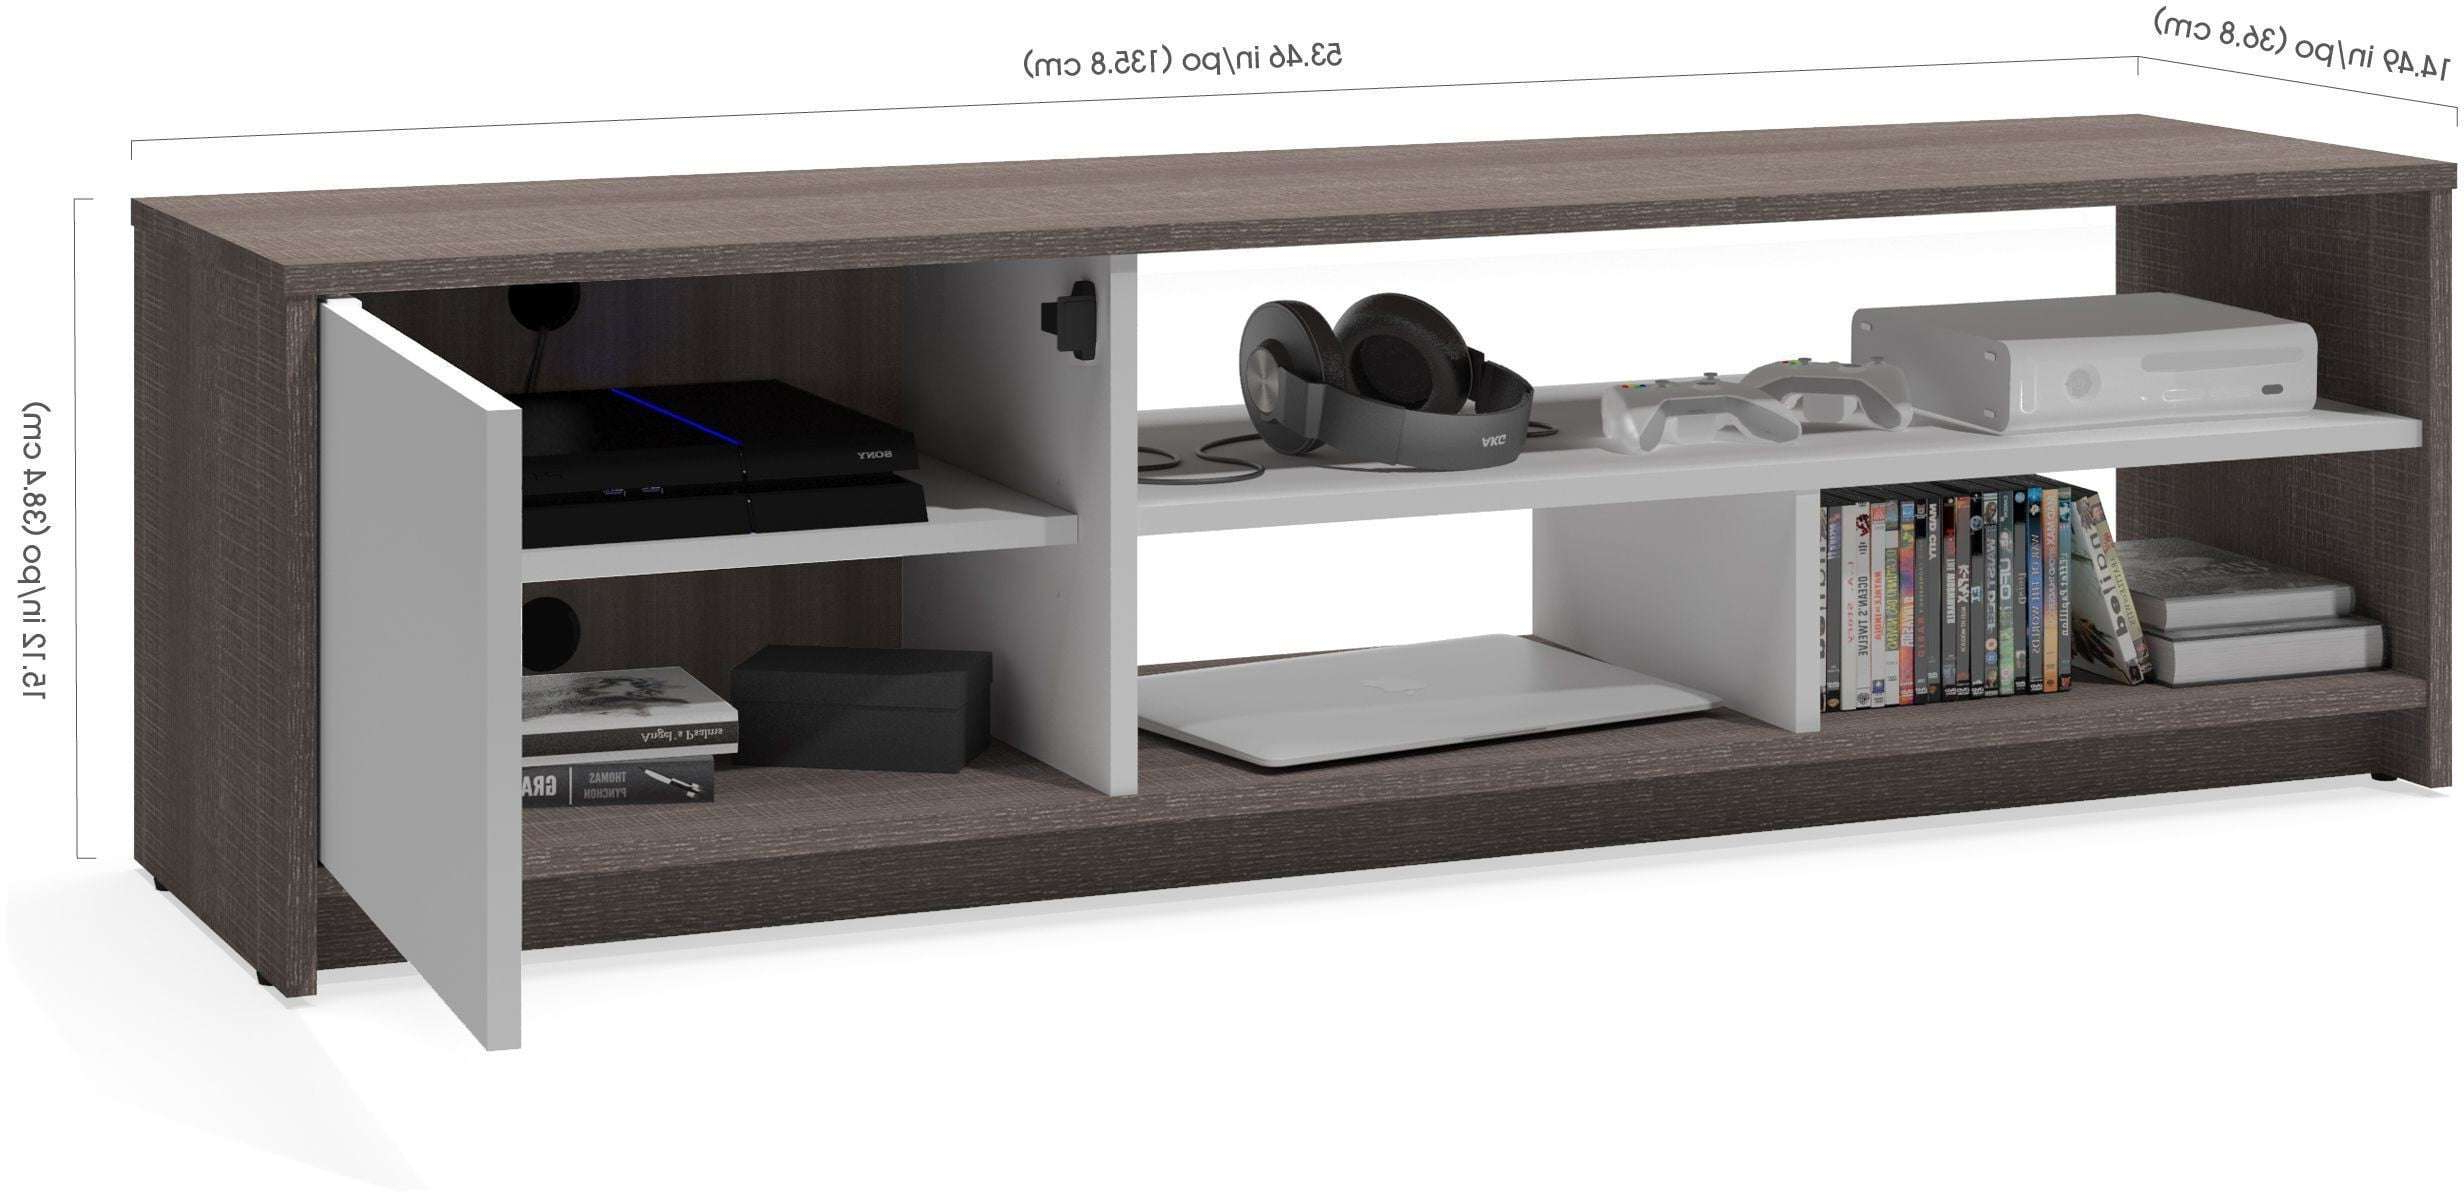 Tv Stand Coffee Table Sets Within Trendy 8 Coffee Table Sets With Matching Tv Stand Images (View 10 of 20)